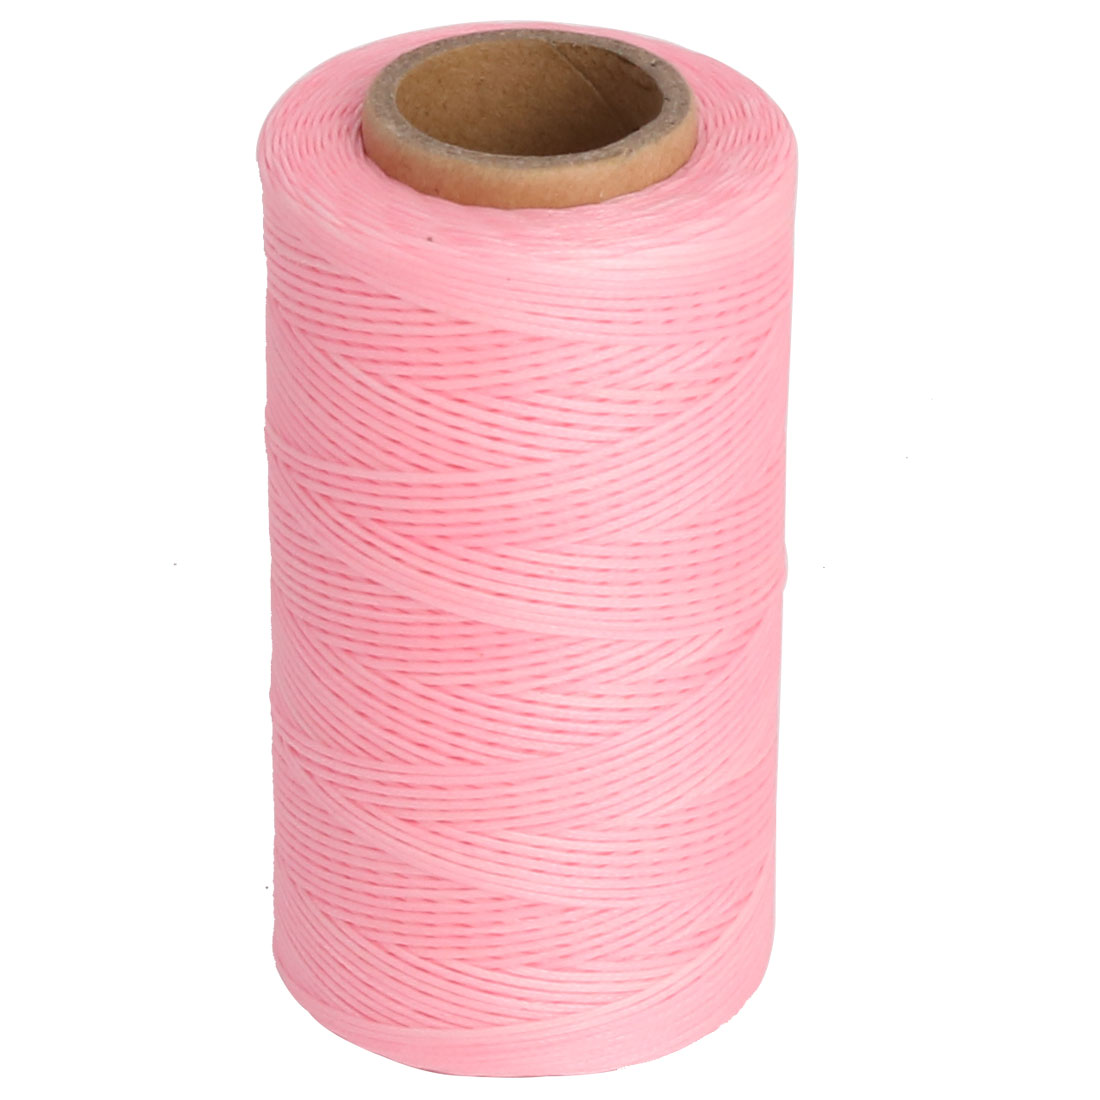 10 Color ALL in ONE Polyester Yarn Coils Strings Sewing Thread